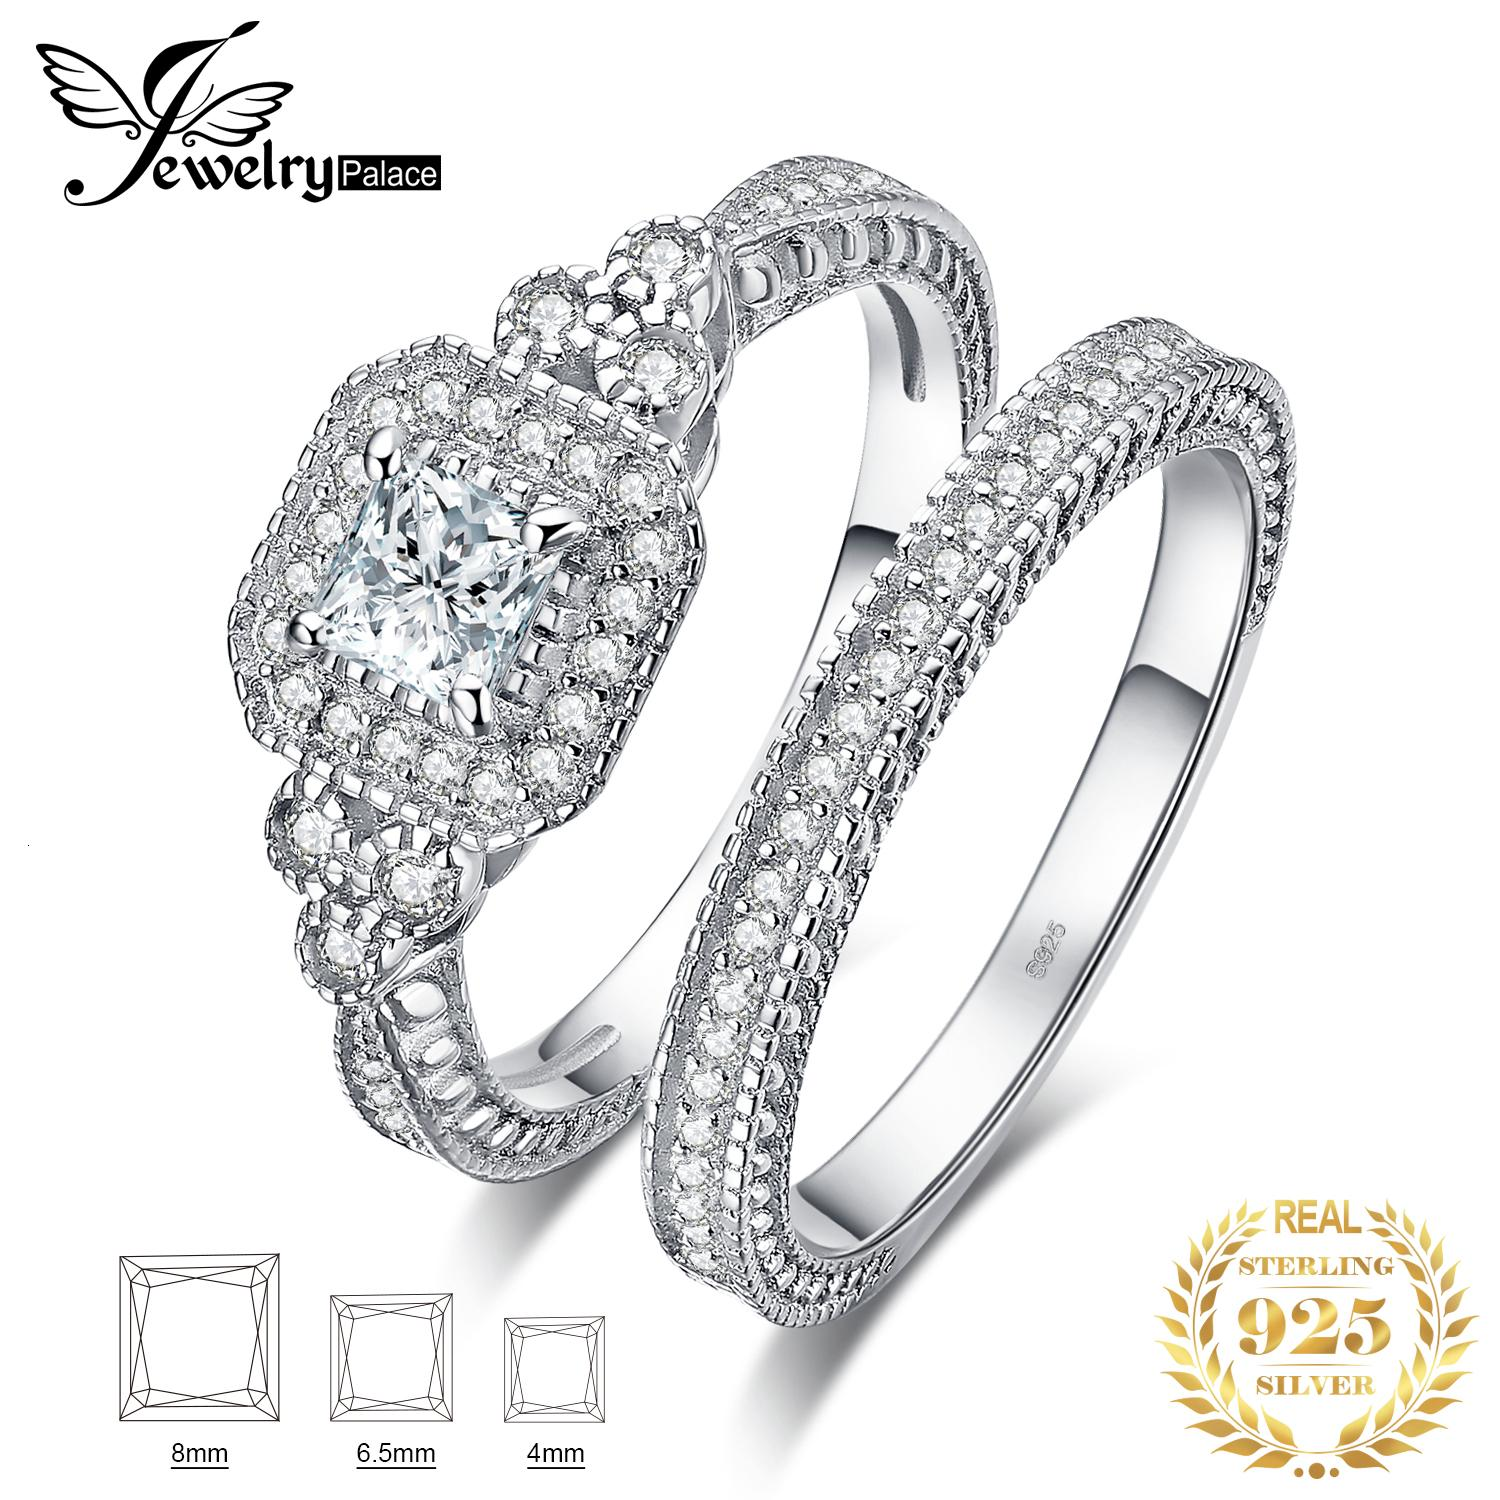 2020 Jpalace Princess Vintage Engagement Ring Set 925 Sterling Silver Rings For Women Wedding Rings Bridal Sets Silver 925 Jewelry V191212 From Ruiqi08 23 65 Dhgate Com